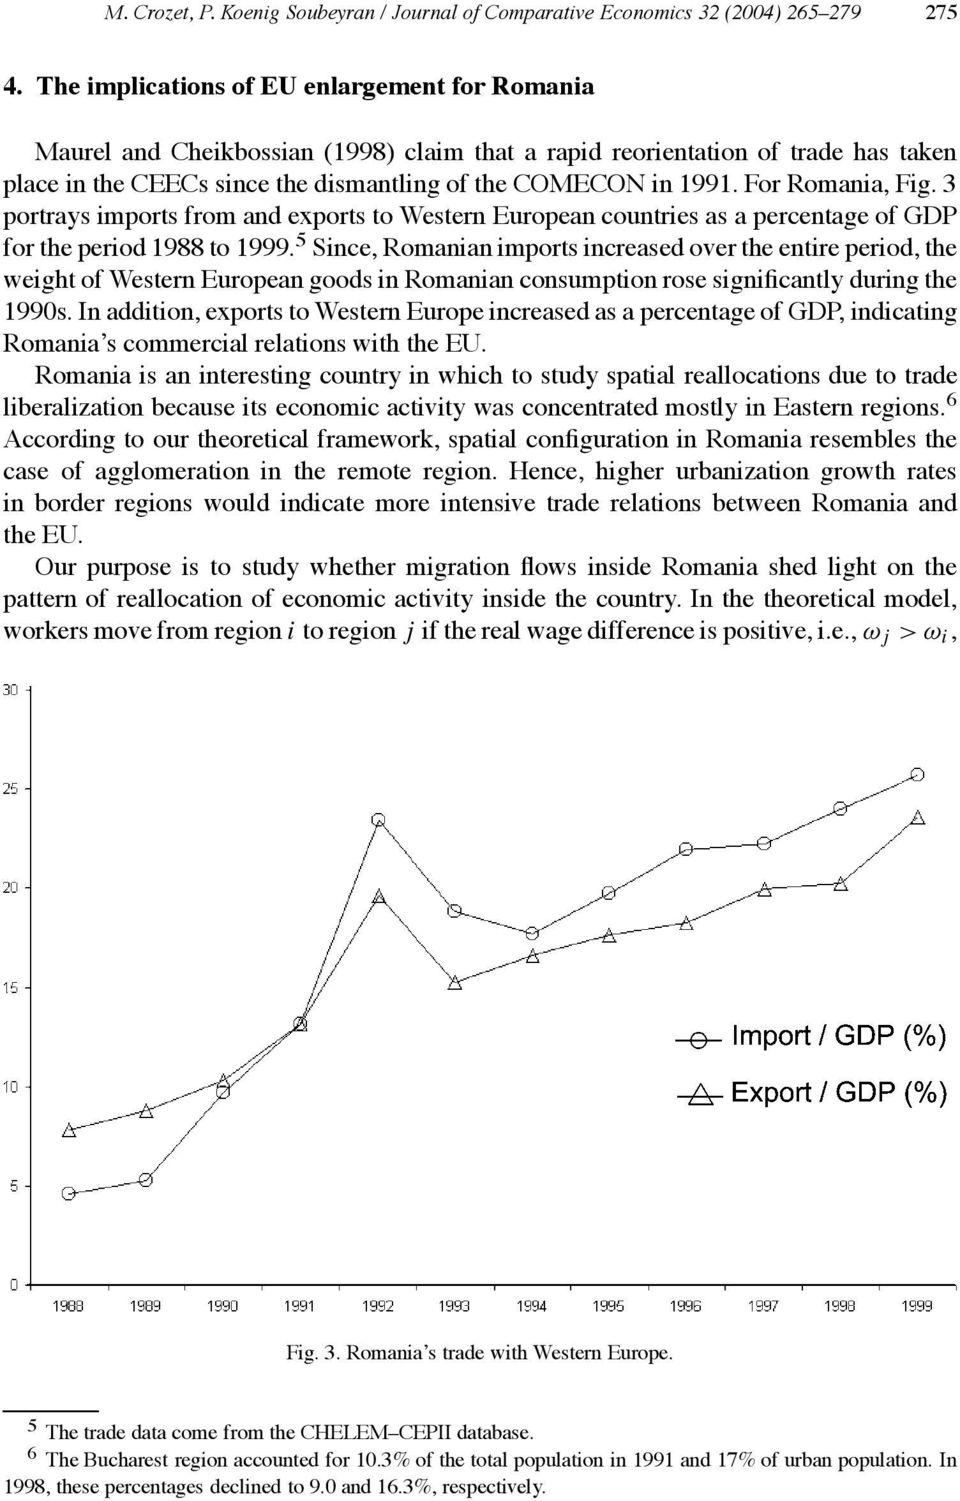 For Romania, Fig. 3 portrays imports from and exports to Western European countries as a percentage of GDP for the period 1988 to 1999.